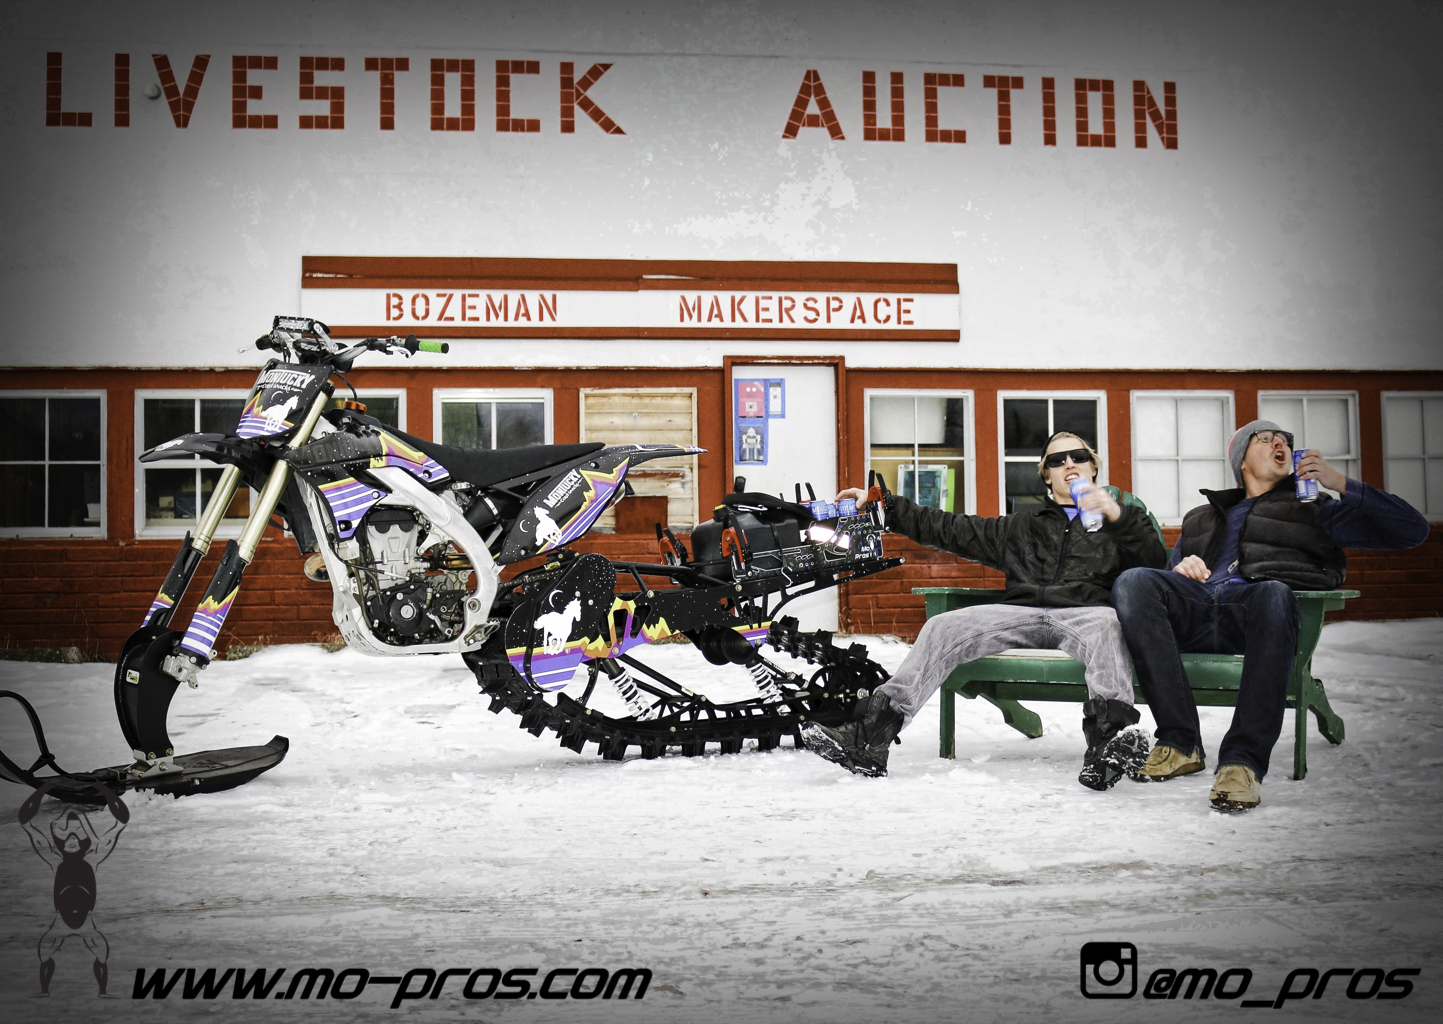 43_Backcountry _Backcountry United_CFR rack_Cheetah Factory Racing_gas Rack_Gear_Gun Rack_LinQ Snowboard Ski_Snowboard rack_snowboard_Snowboarding_snowmobile bag_Snowmobile_timbersled bag_Timbersled .jpg